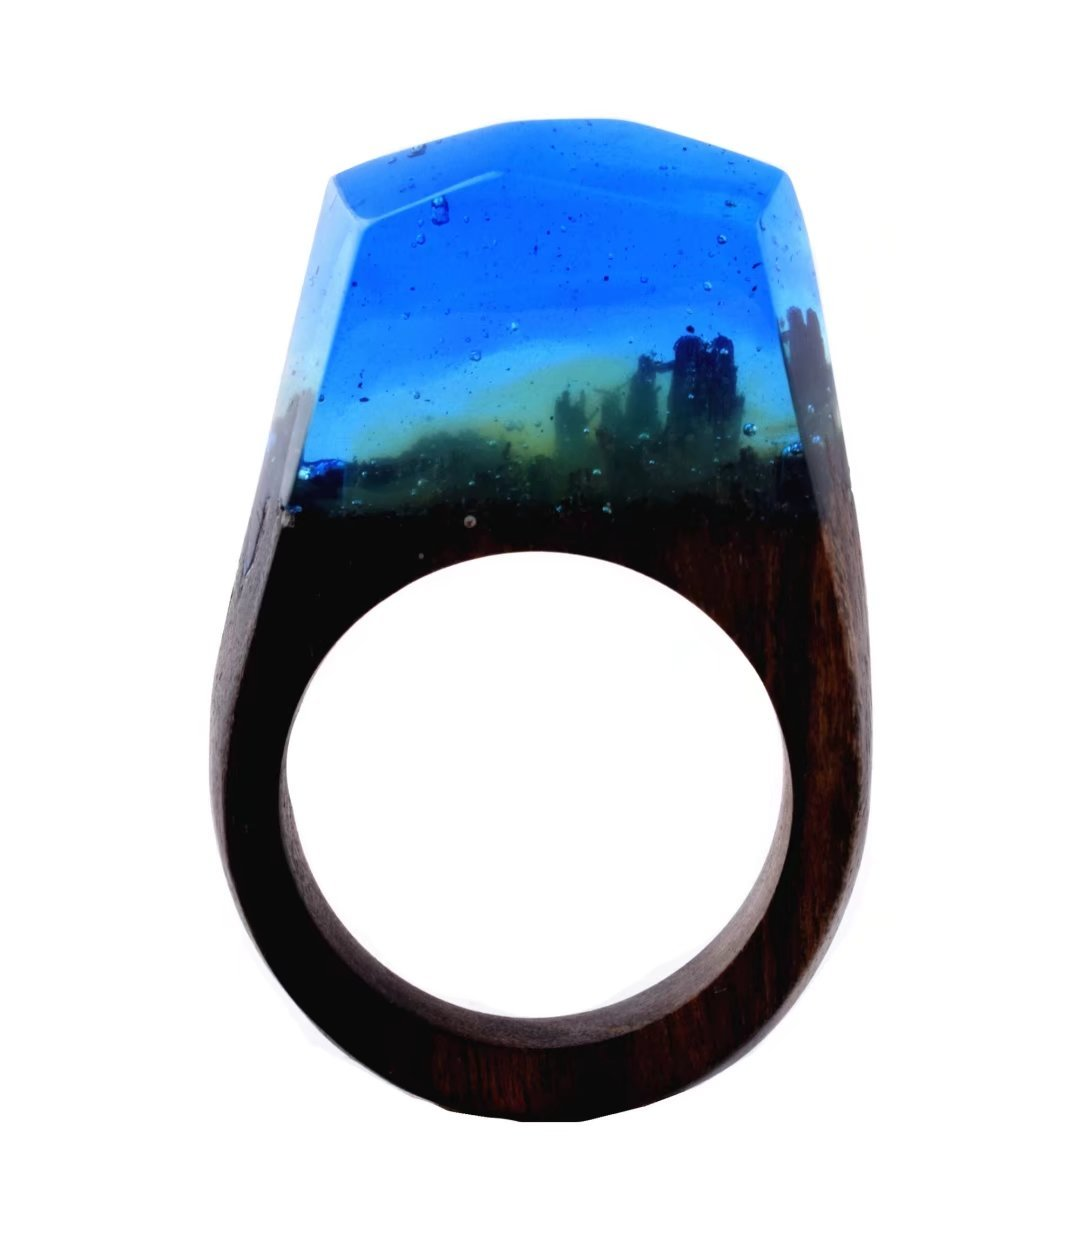 Heyou Love Handmade Wood Resin Ring With Nature Scenery Landscape Inside Jewelry